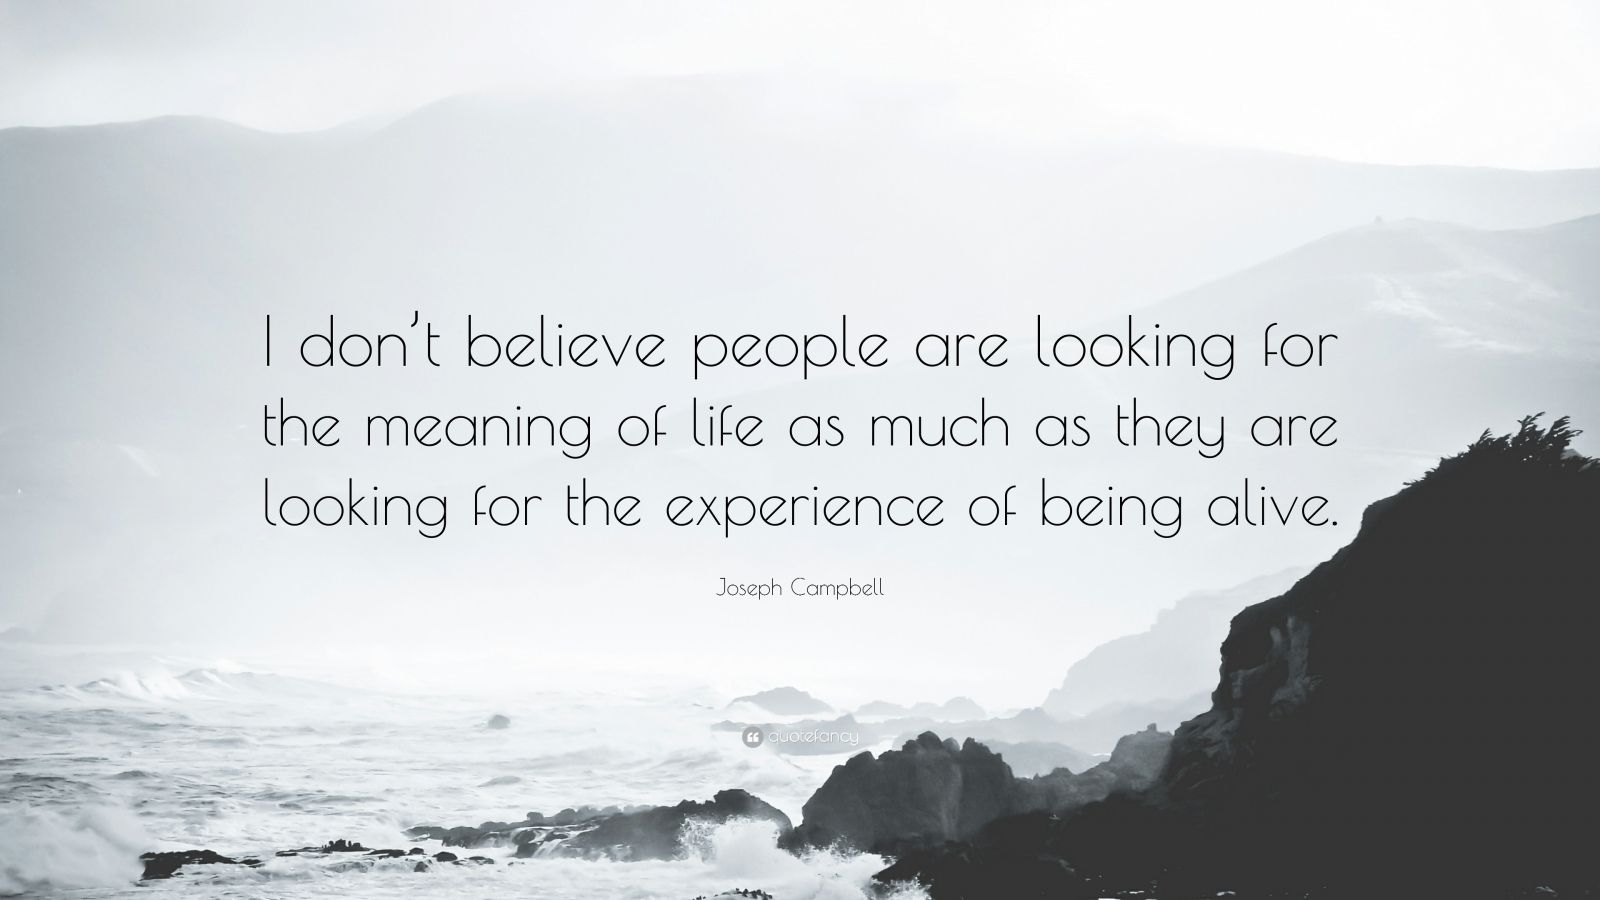 """Joseph Campbell Quote: """"I don't believe people are looking for the meaning of life as much as they are looking for the experience of being alive."""""""